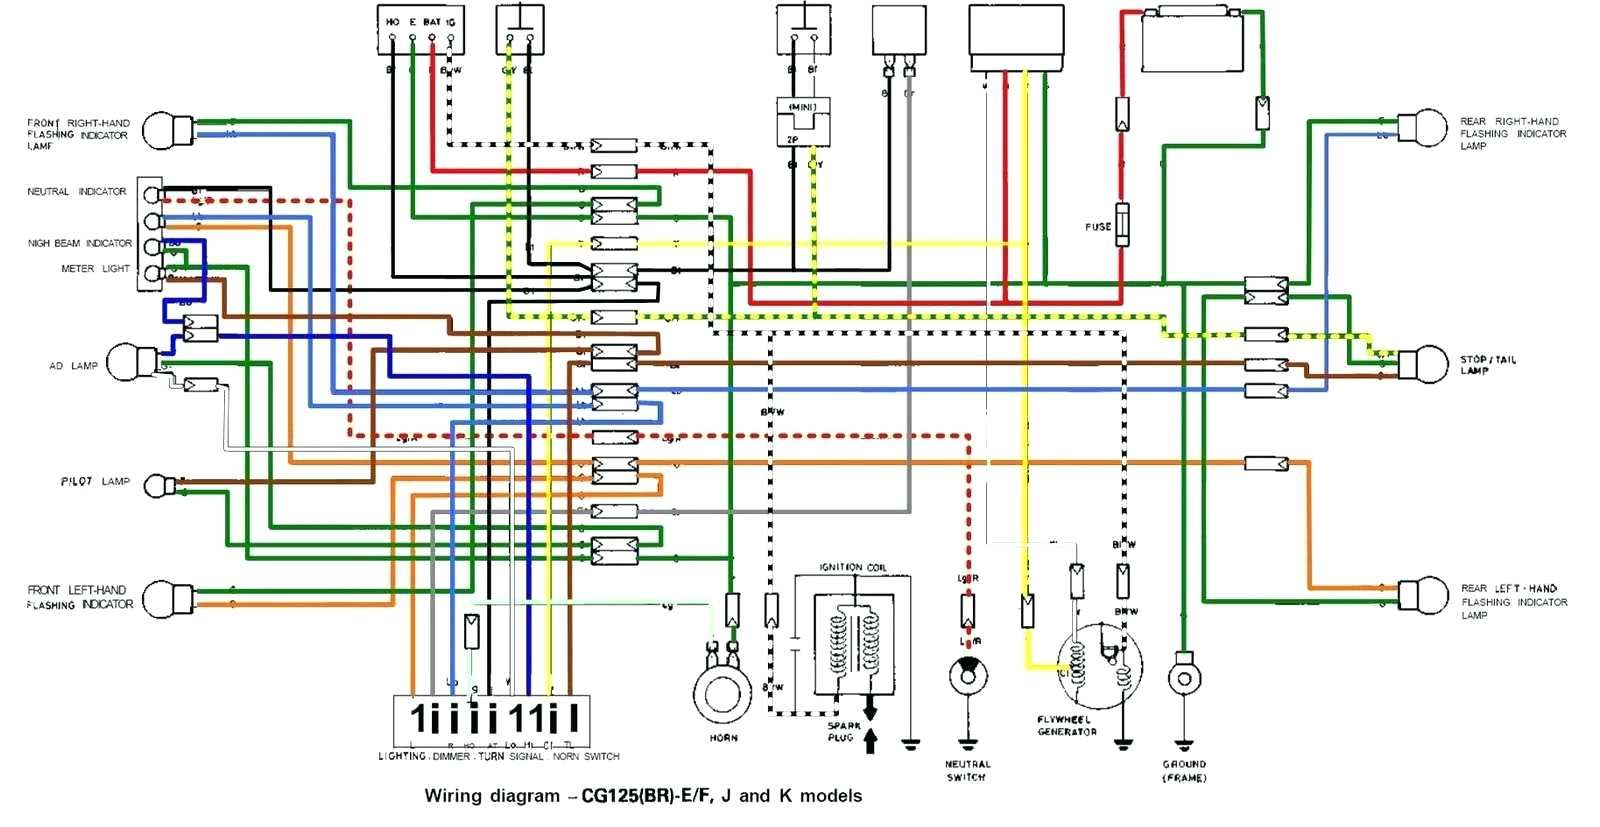 honda xrm 125 wiring diagram photography cheat sheets honda xrm signal light wiring honda xrm 125 [ 1600 x 827 Pixel ]